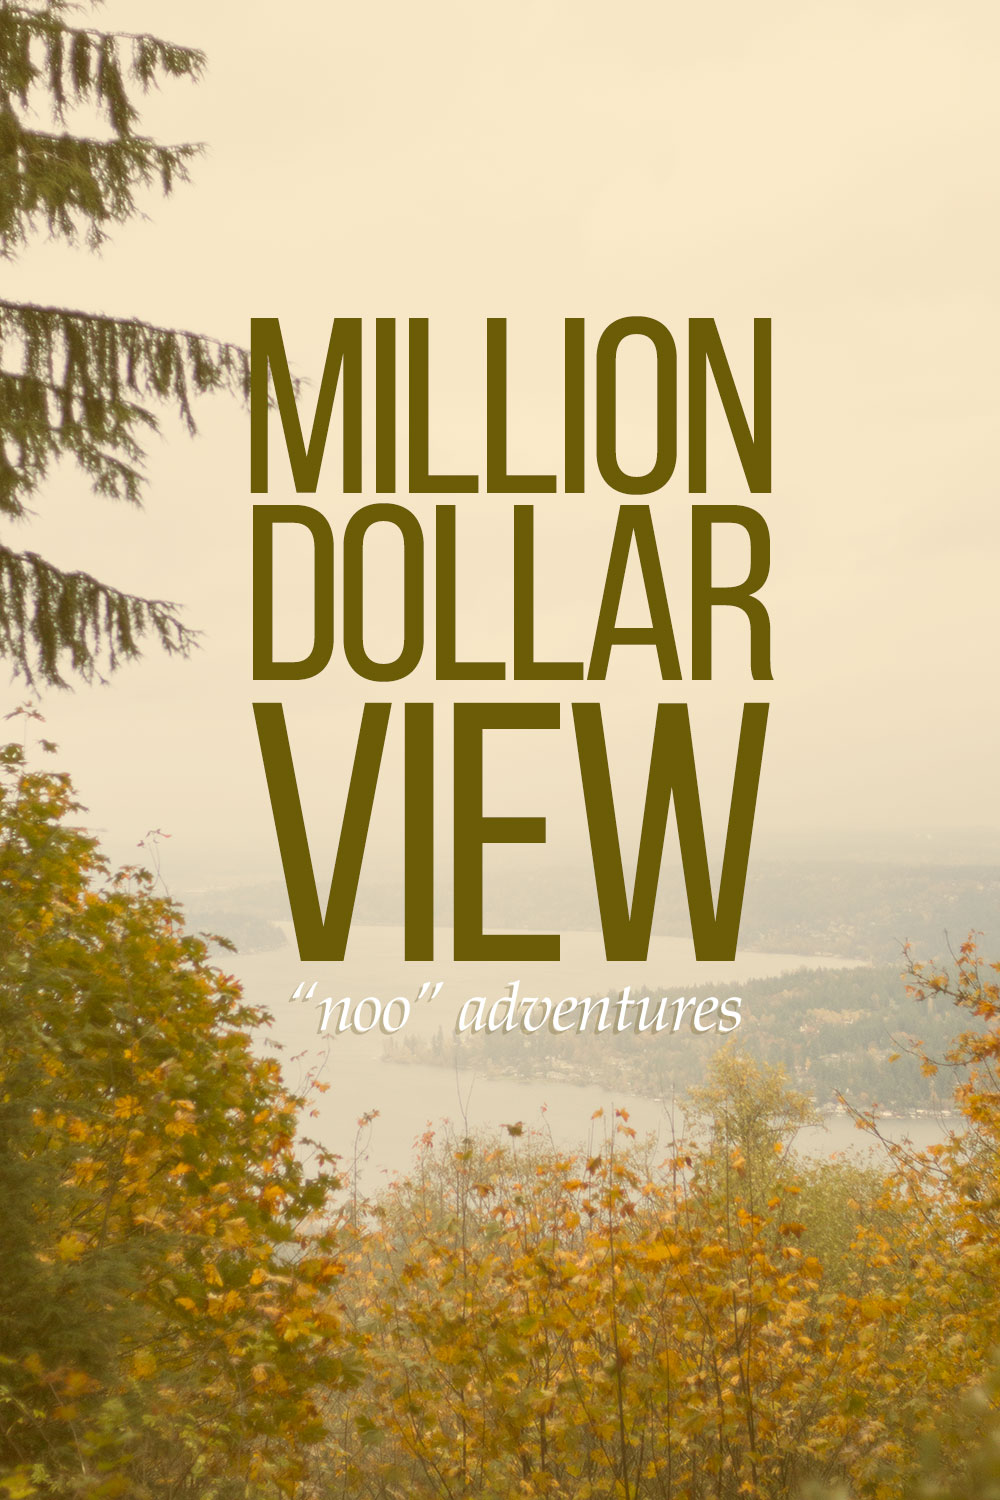 Noo Adventure with Noosa Yoghurt at Million Dollar View, Cougar Mountain, Washington // hellorigby seattle travel blog